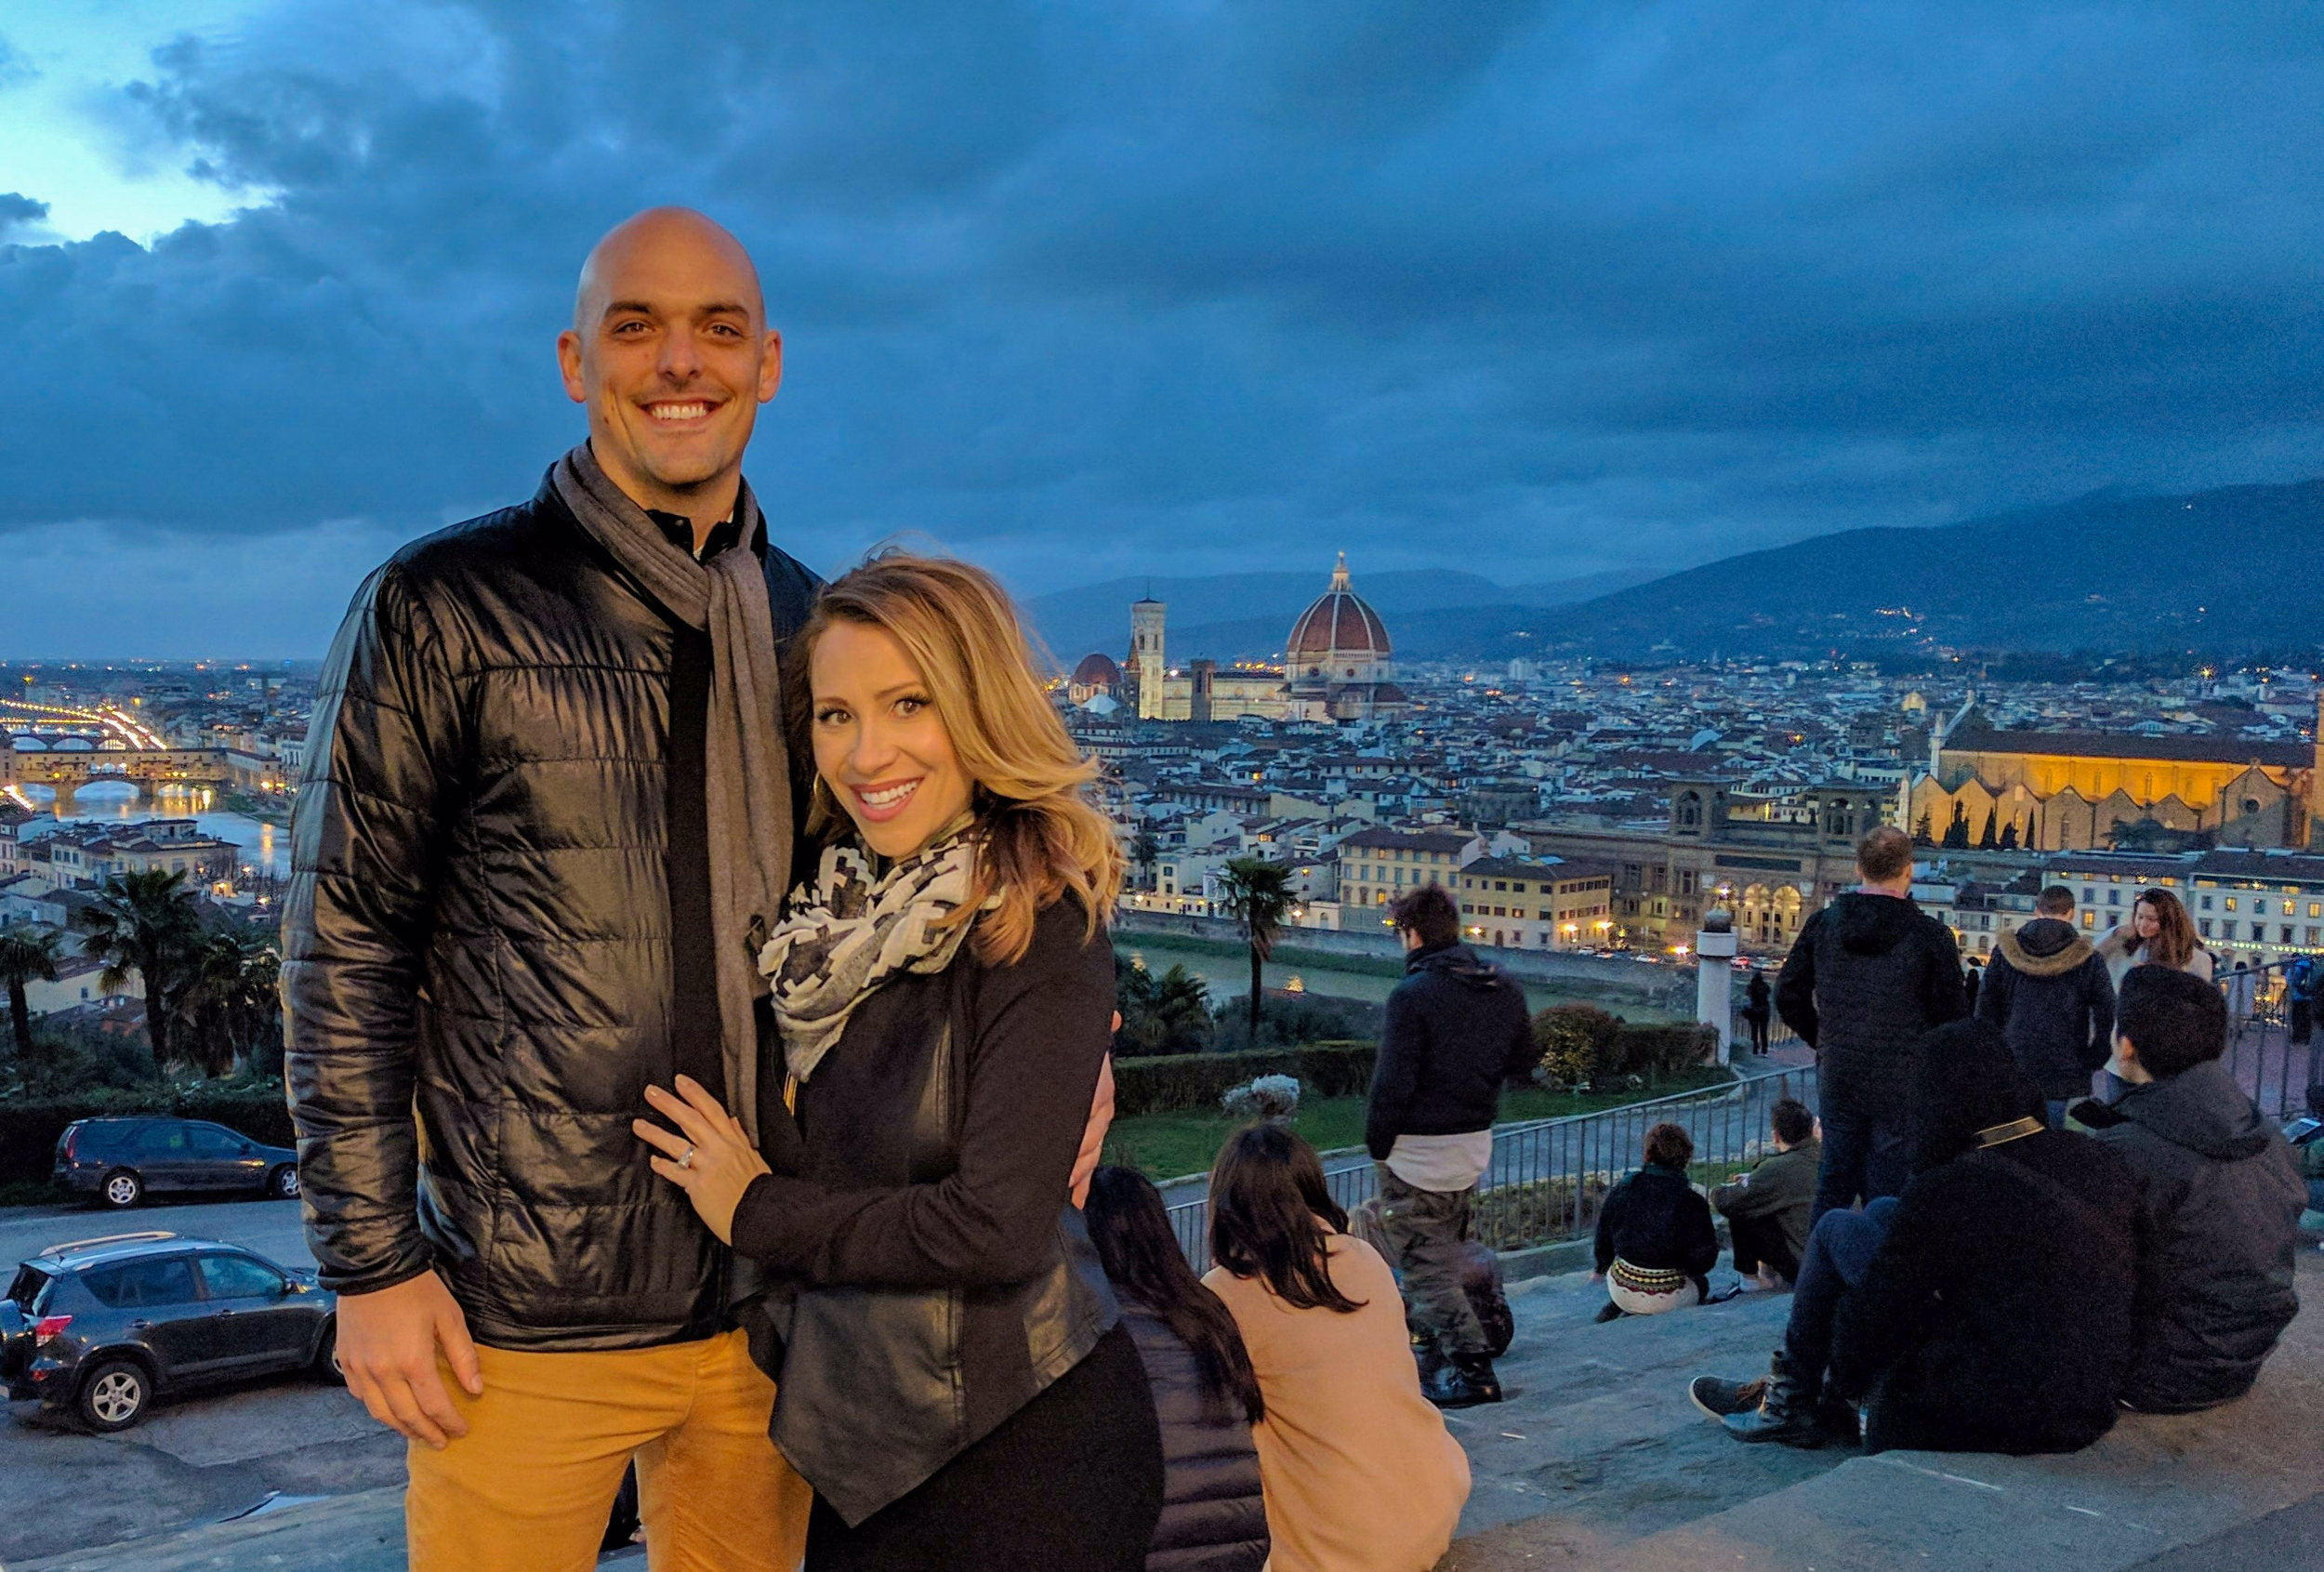 anne and joe at the Piazzale Michelangelo in Florence